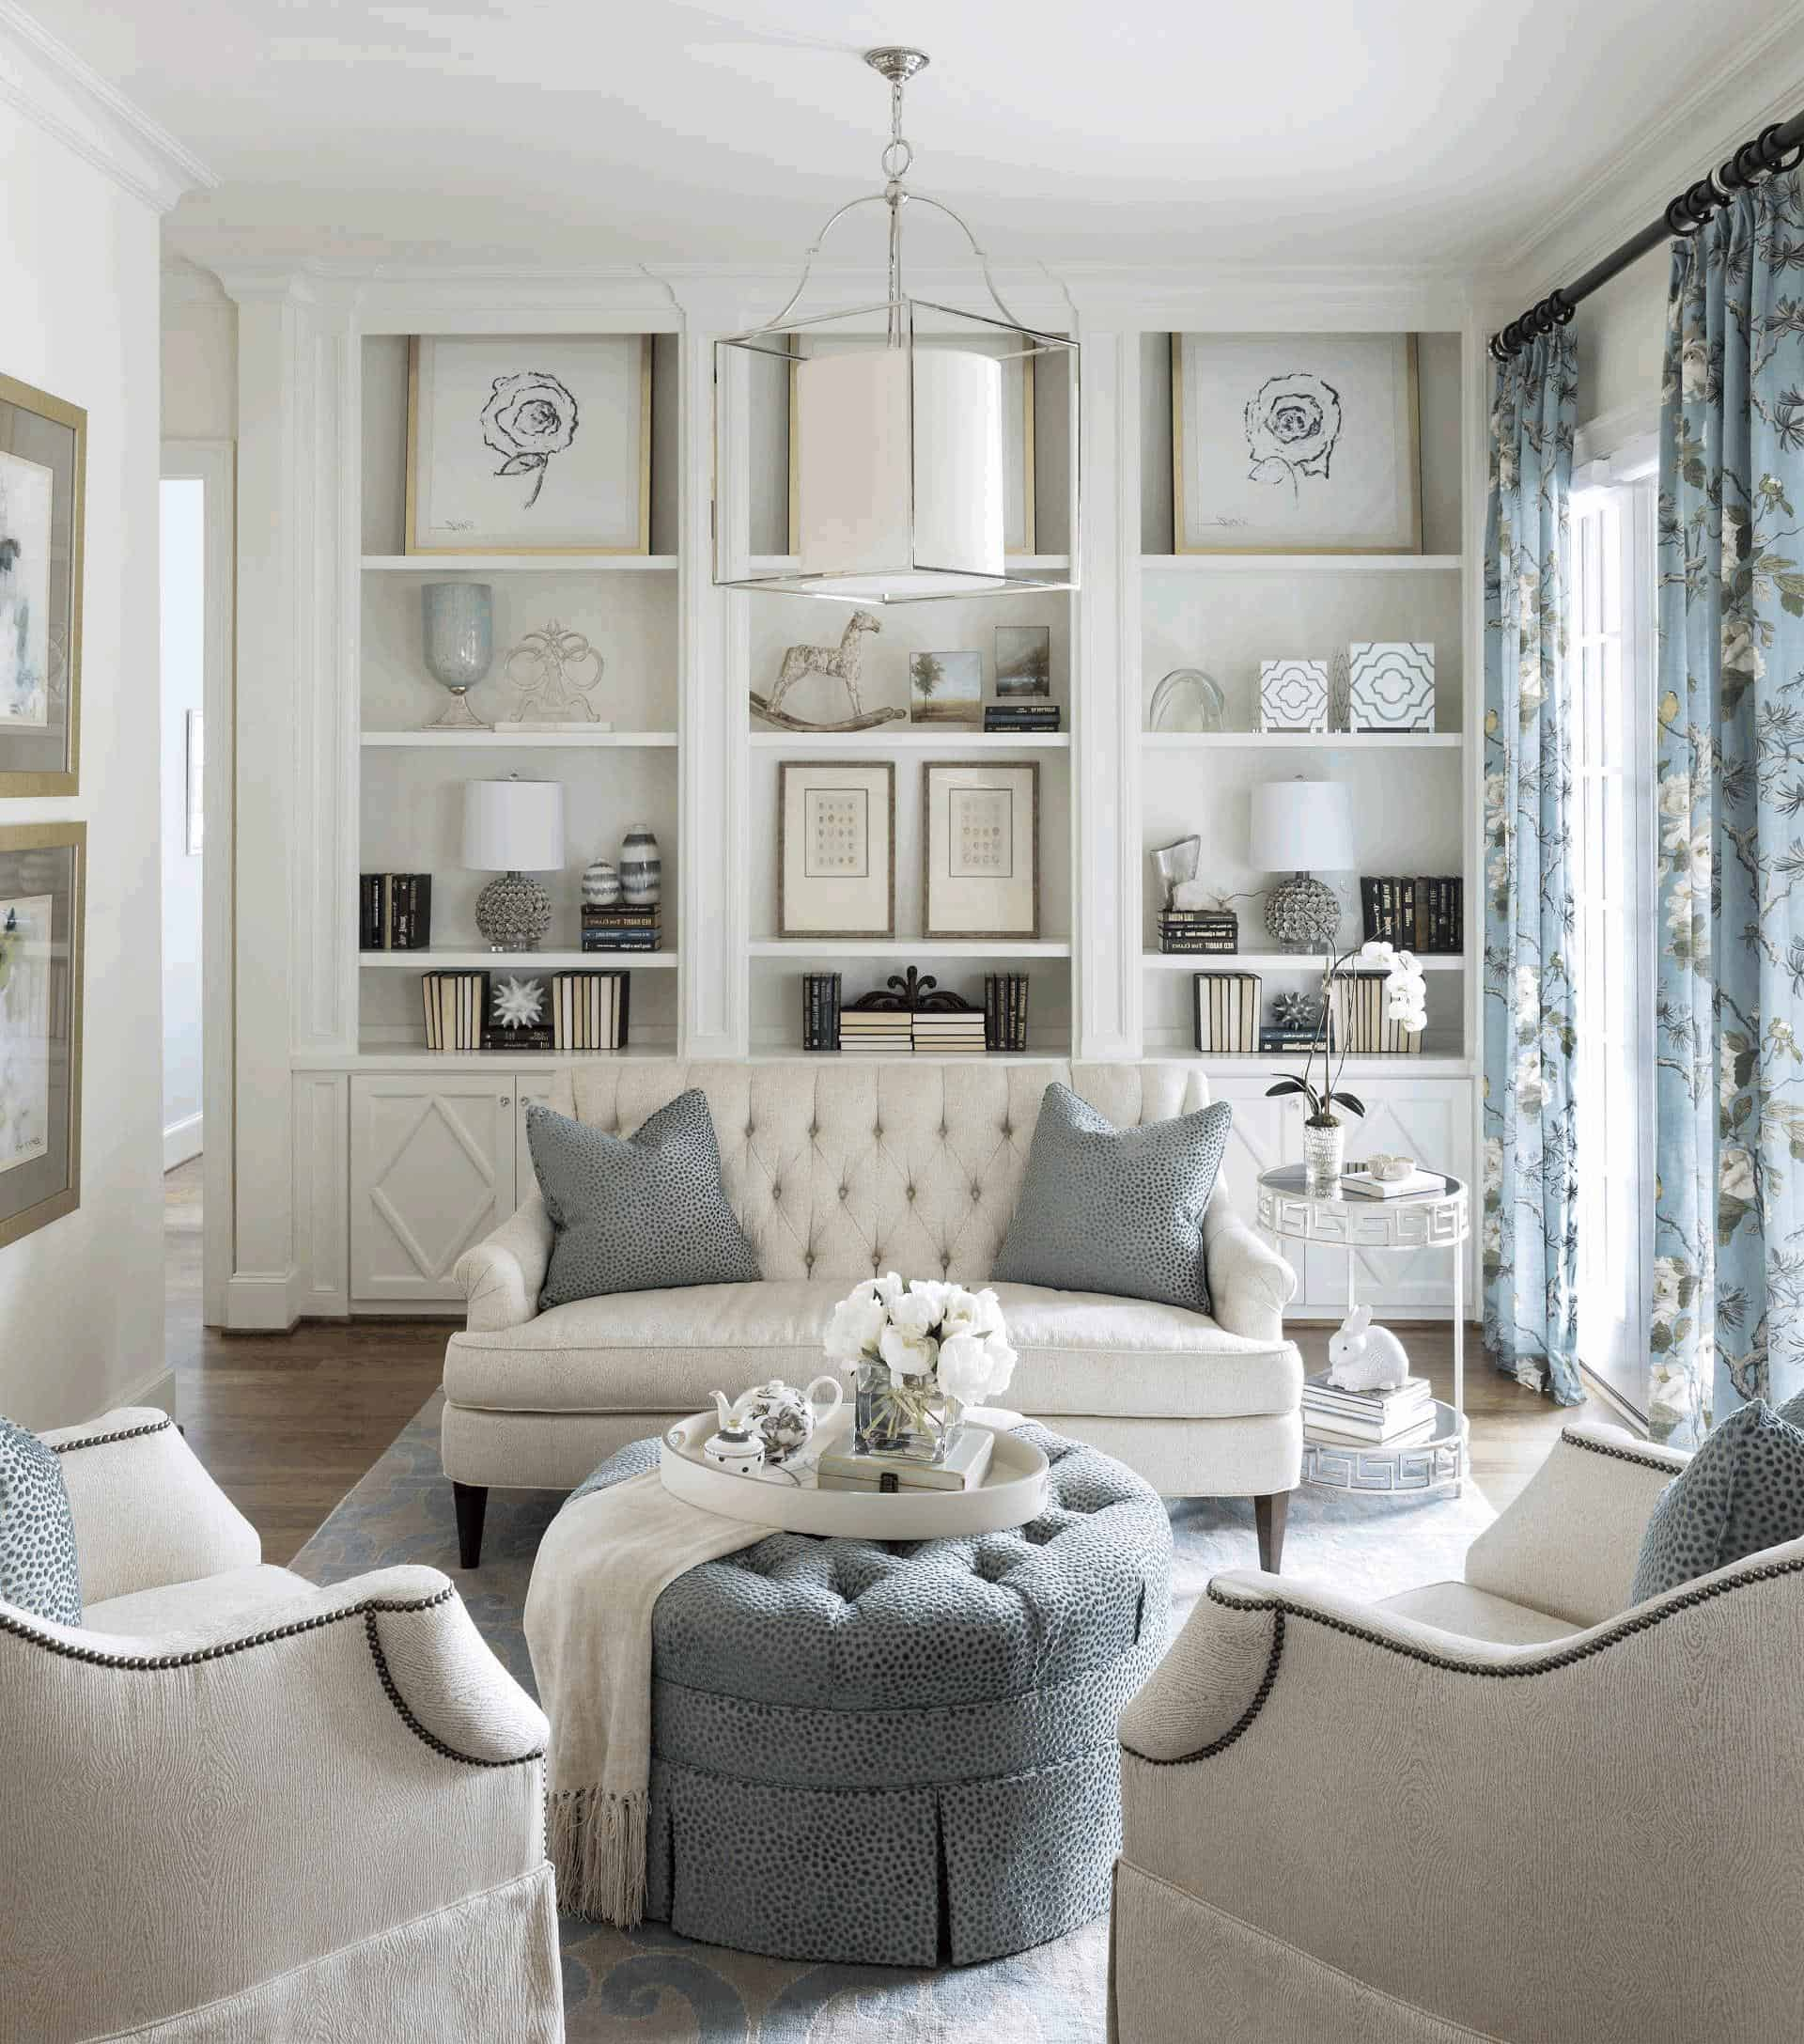 White Sofa Ideas For A Stylish Living Room